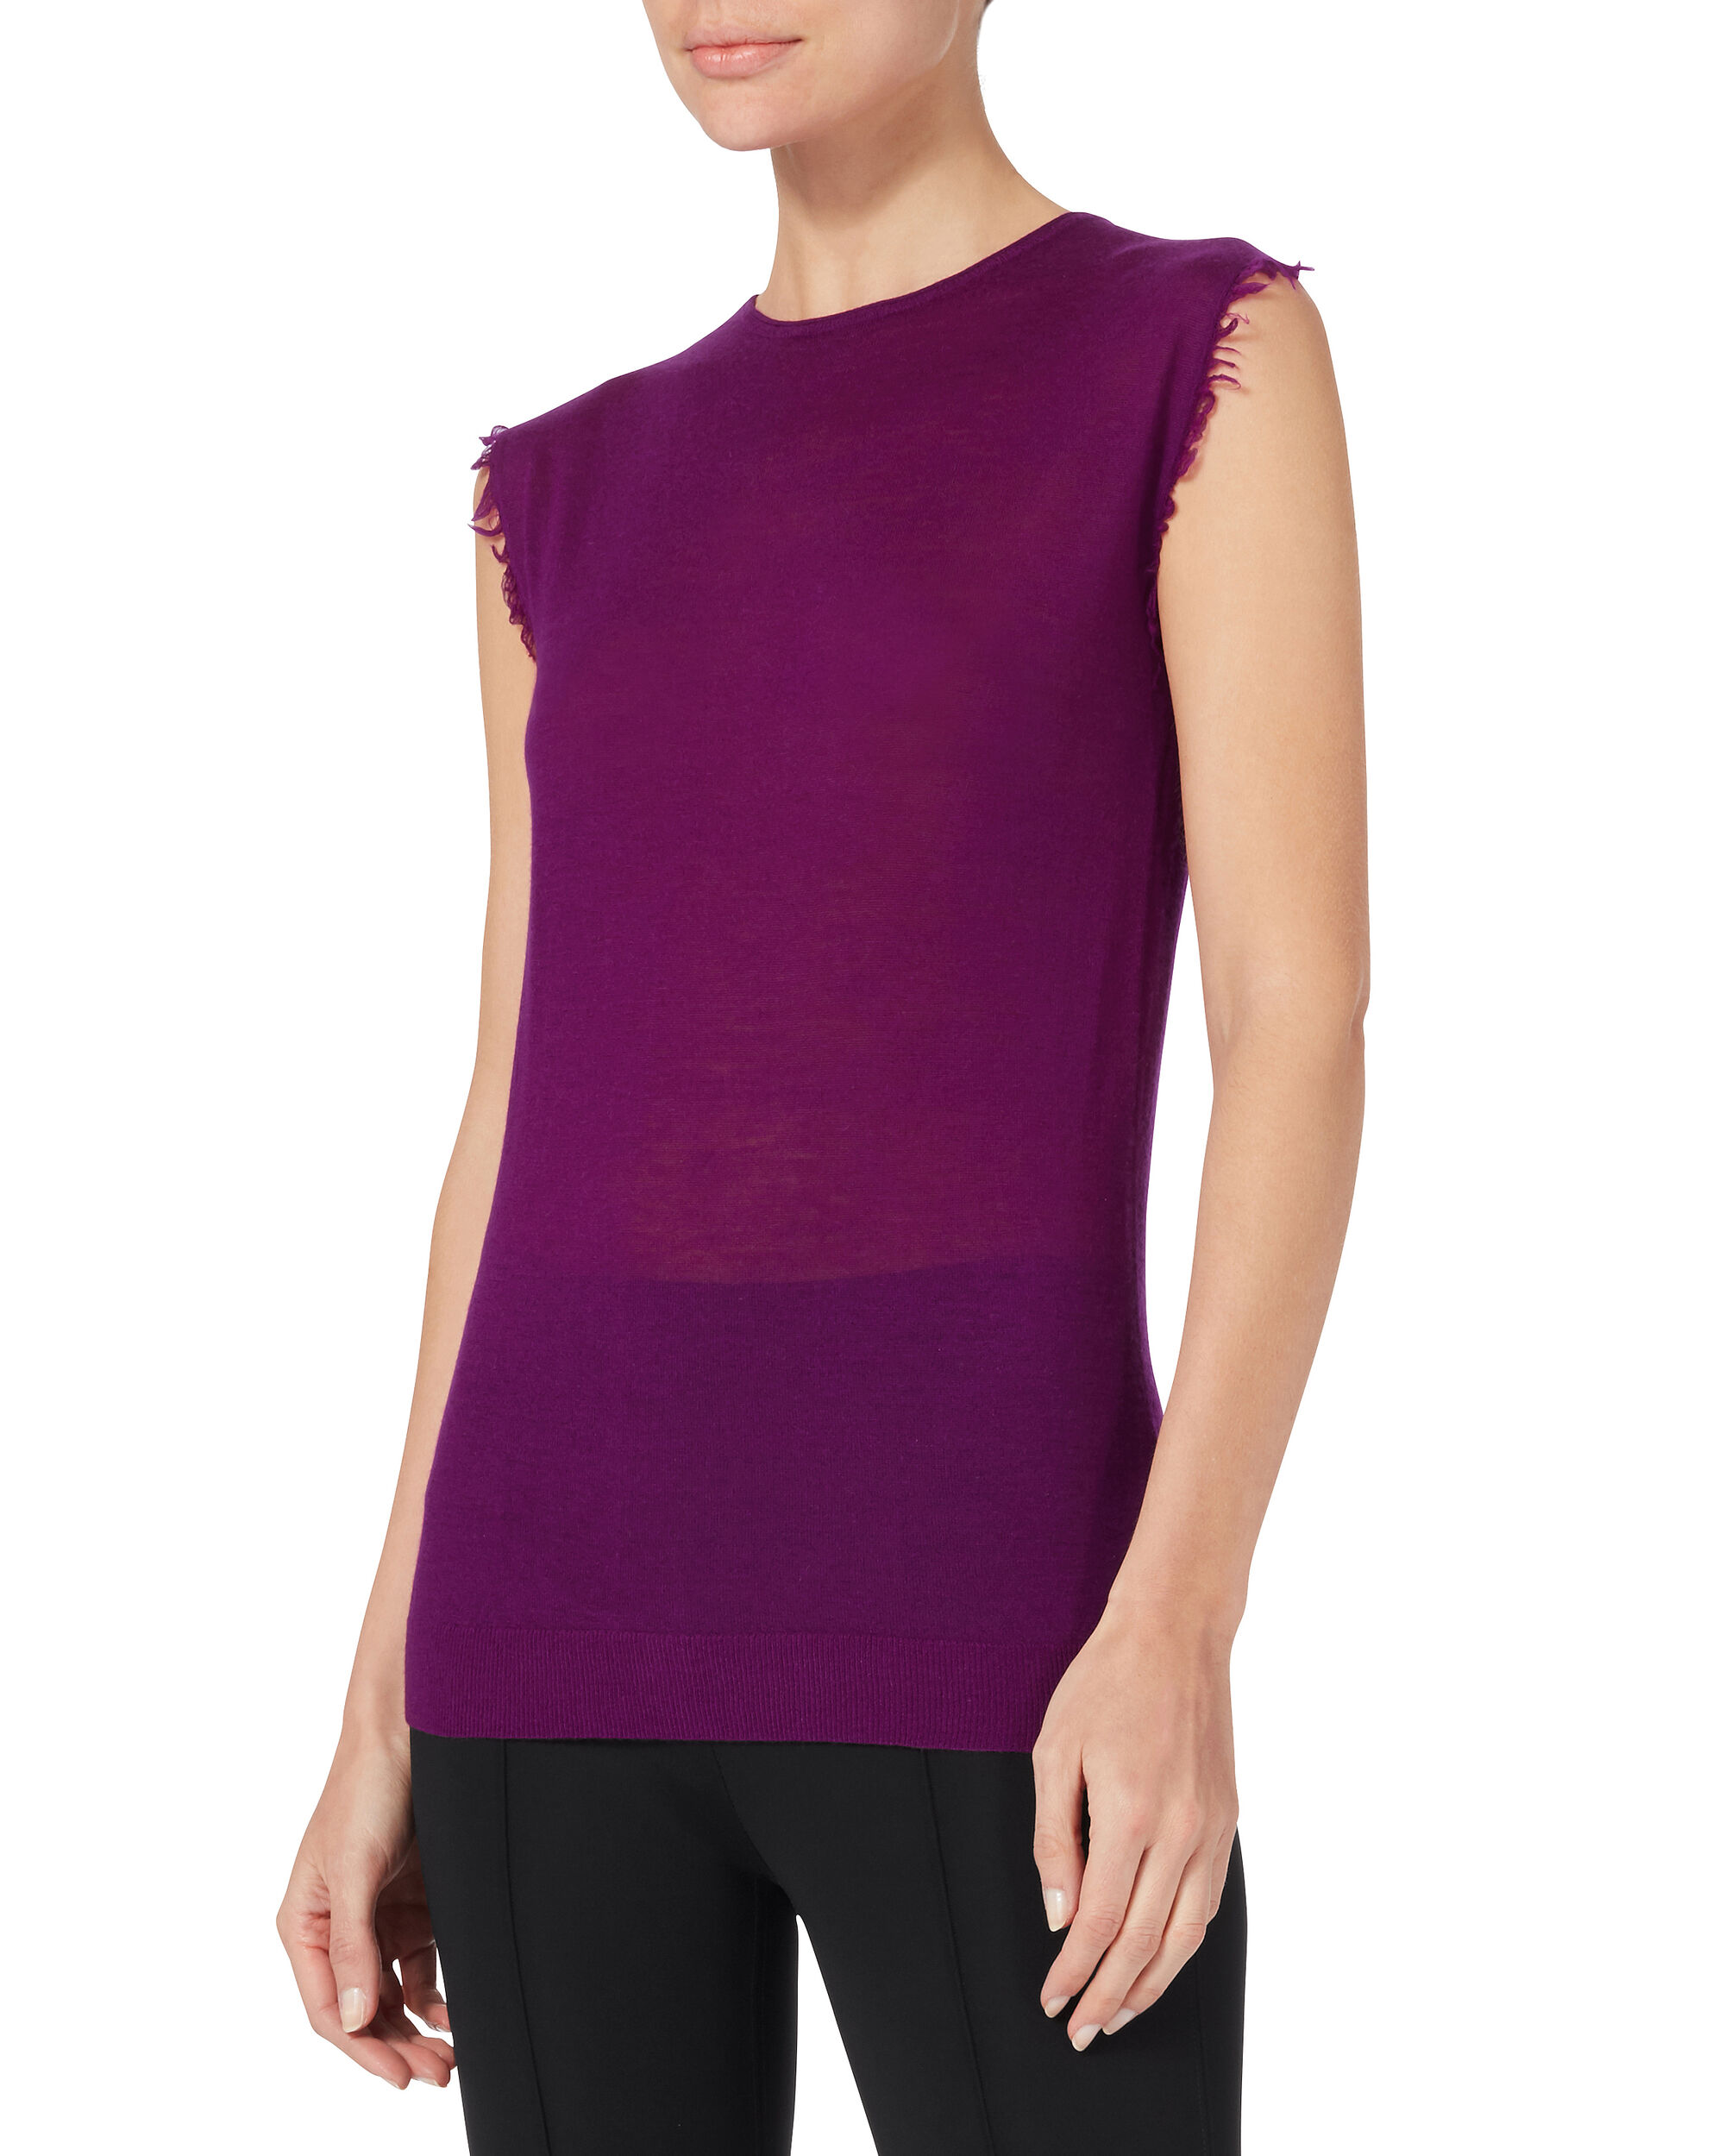 Frayed Edge Sleeveless Cashmere Top, PURPLE-DRK, hi-res